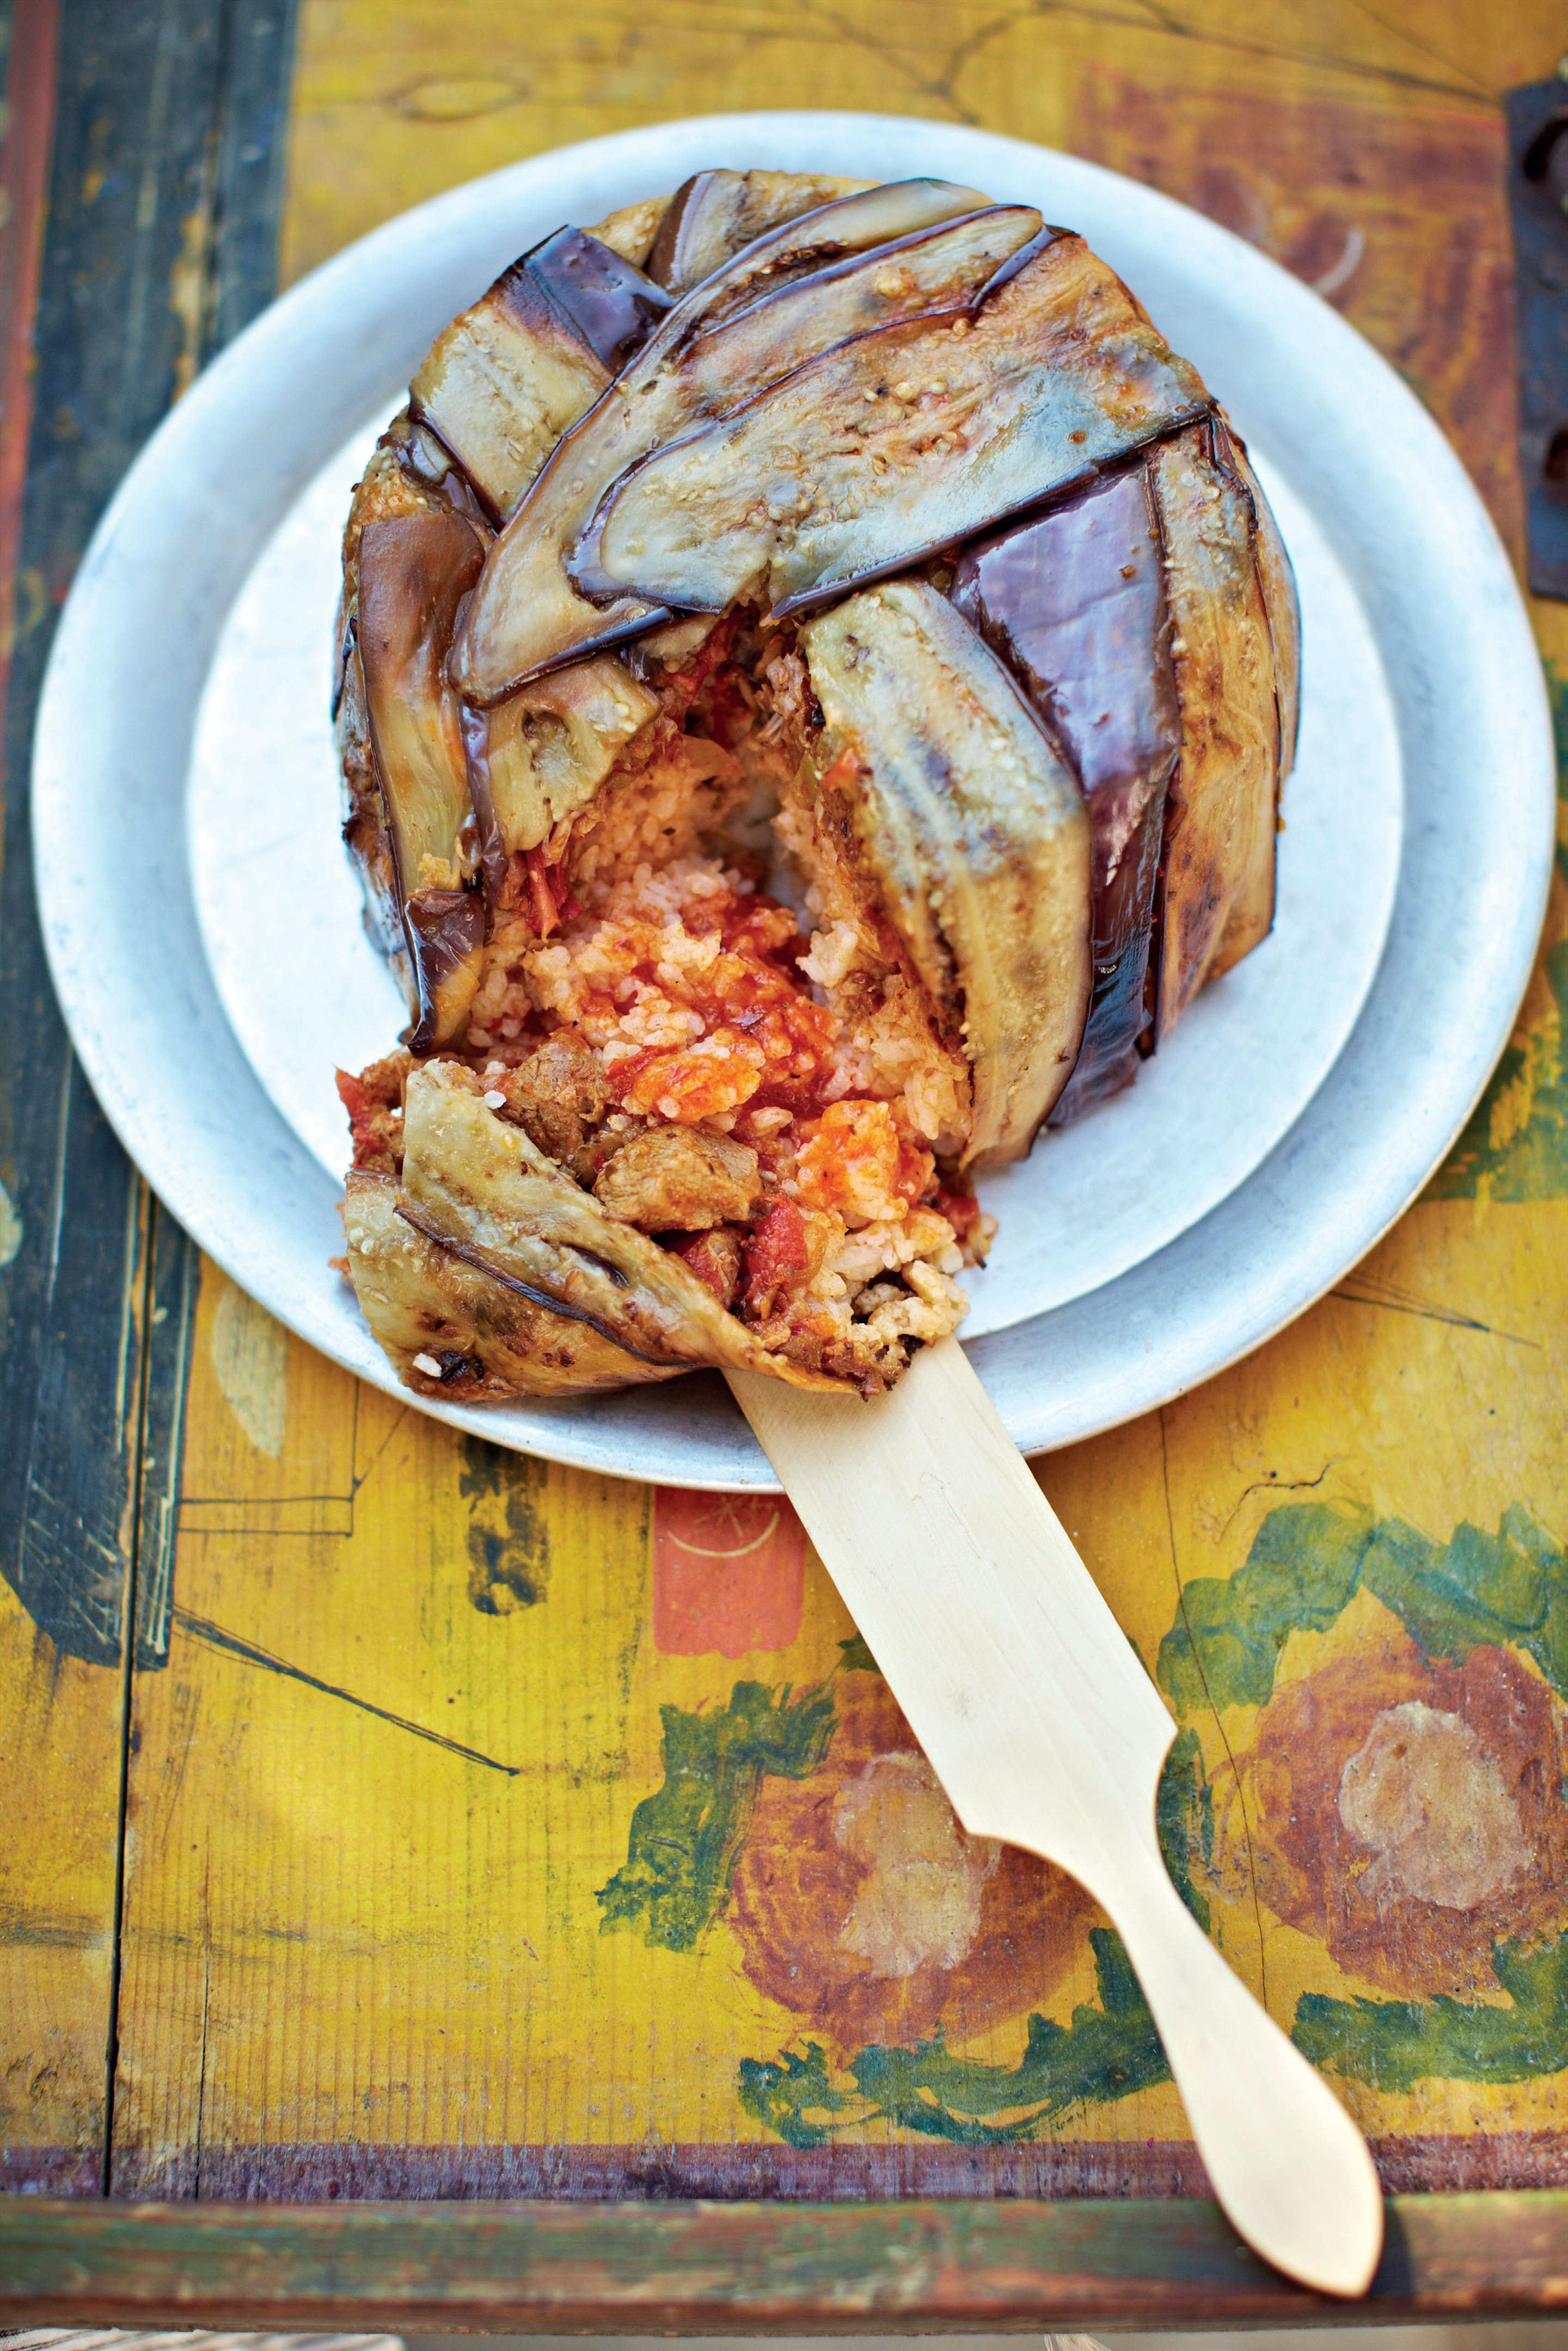 Aubergine and veal layered pilaf